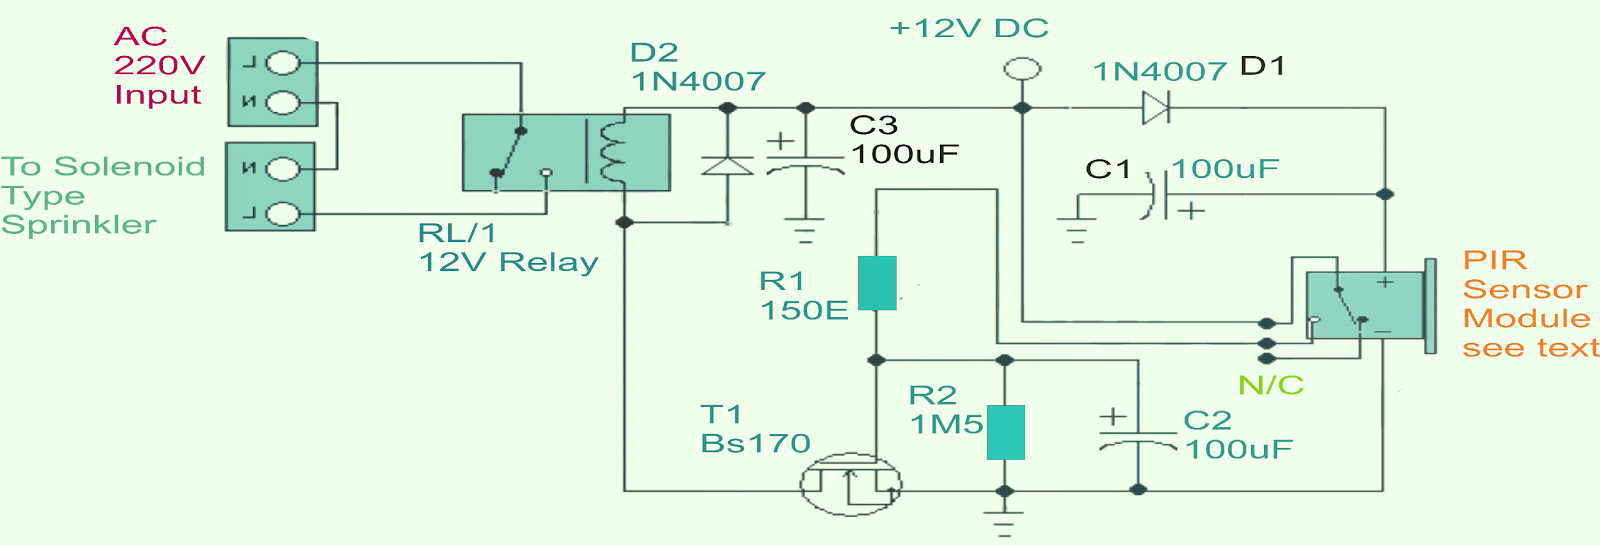 To Make A Simplest Triac Dimmer Switch Circuit 2016 Car Release Date